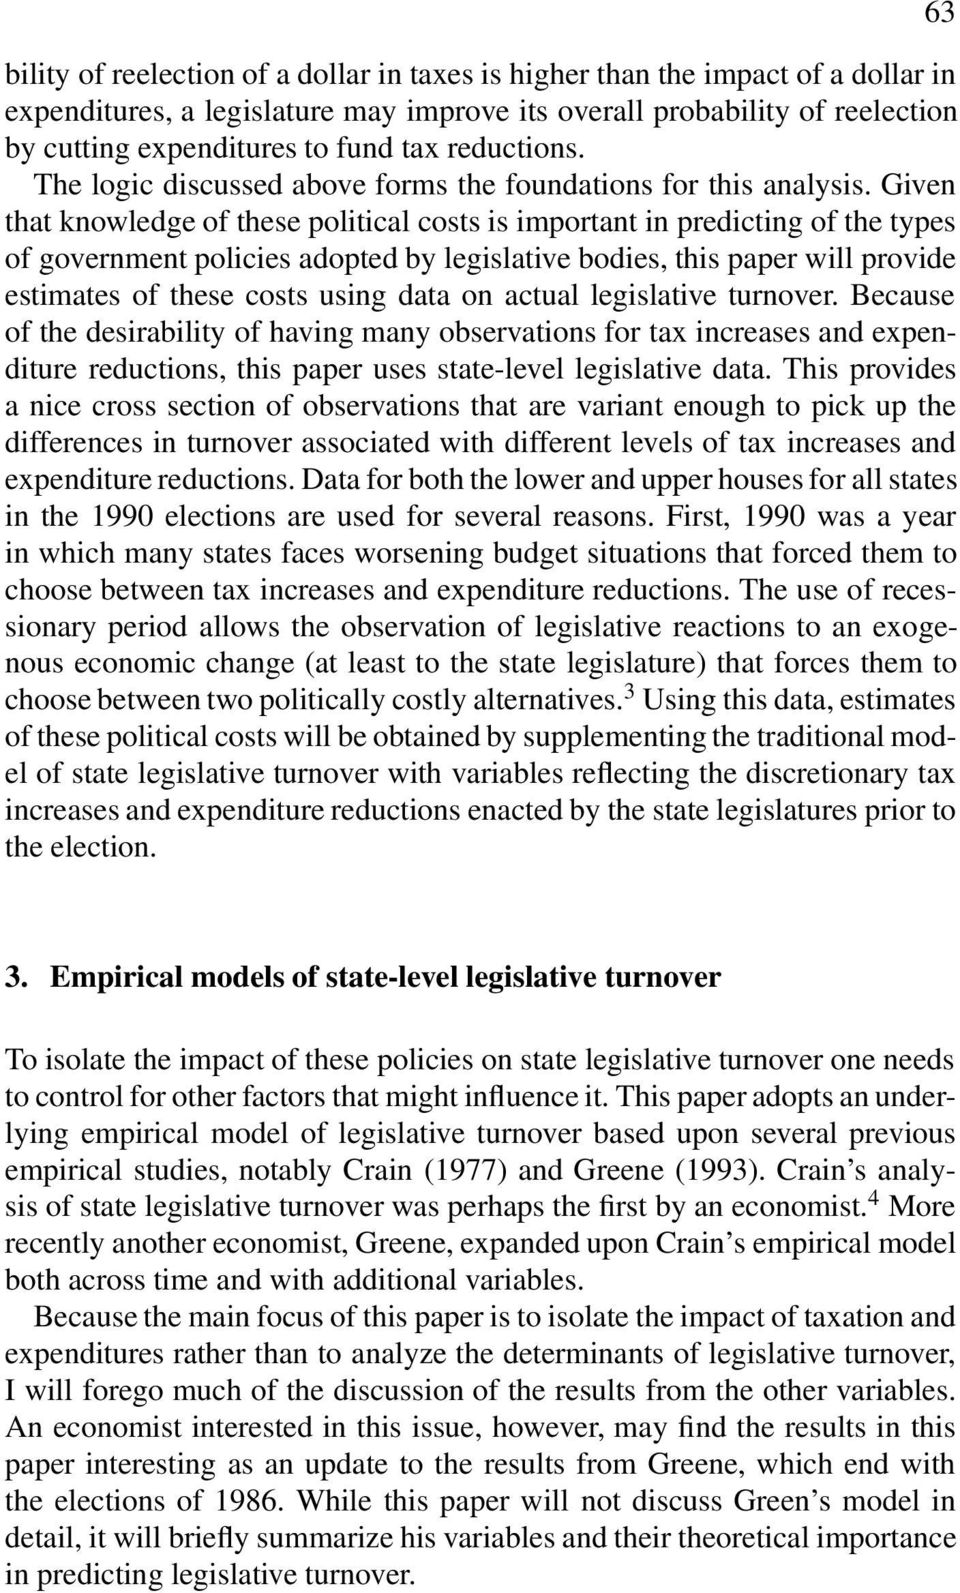 Given that knowledge of these political costs is important in predicting of the types of government policies adopted by legislative bodies, this paper will provide estimates of these costs using data